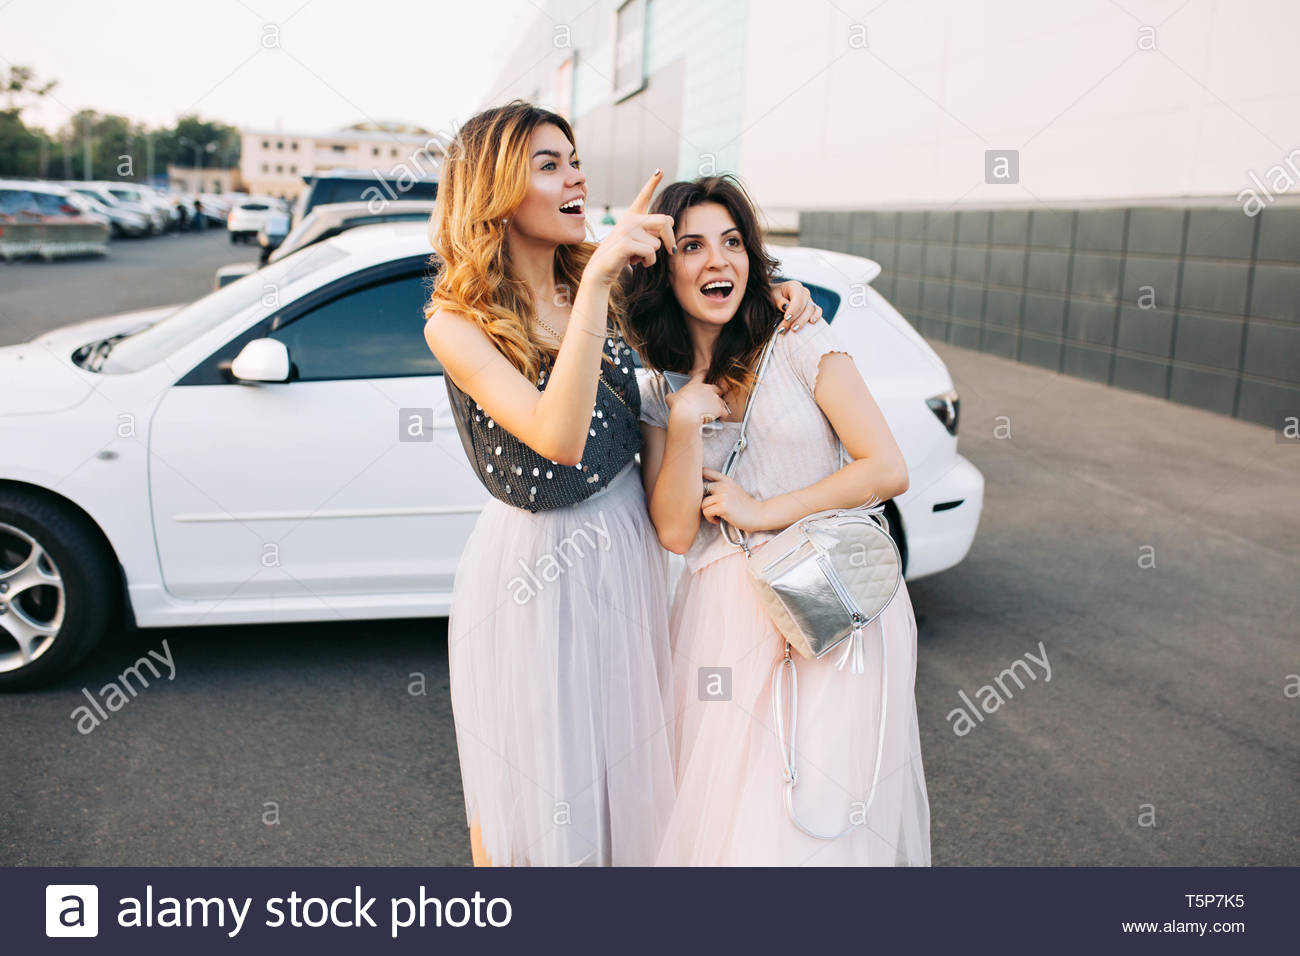 Two pretty girls in  tulle skirts having fun on parking. They looking surprised and excited far away - Stock Image